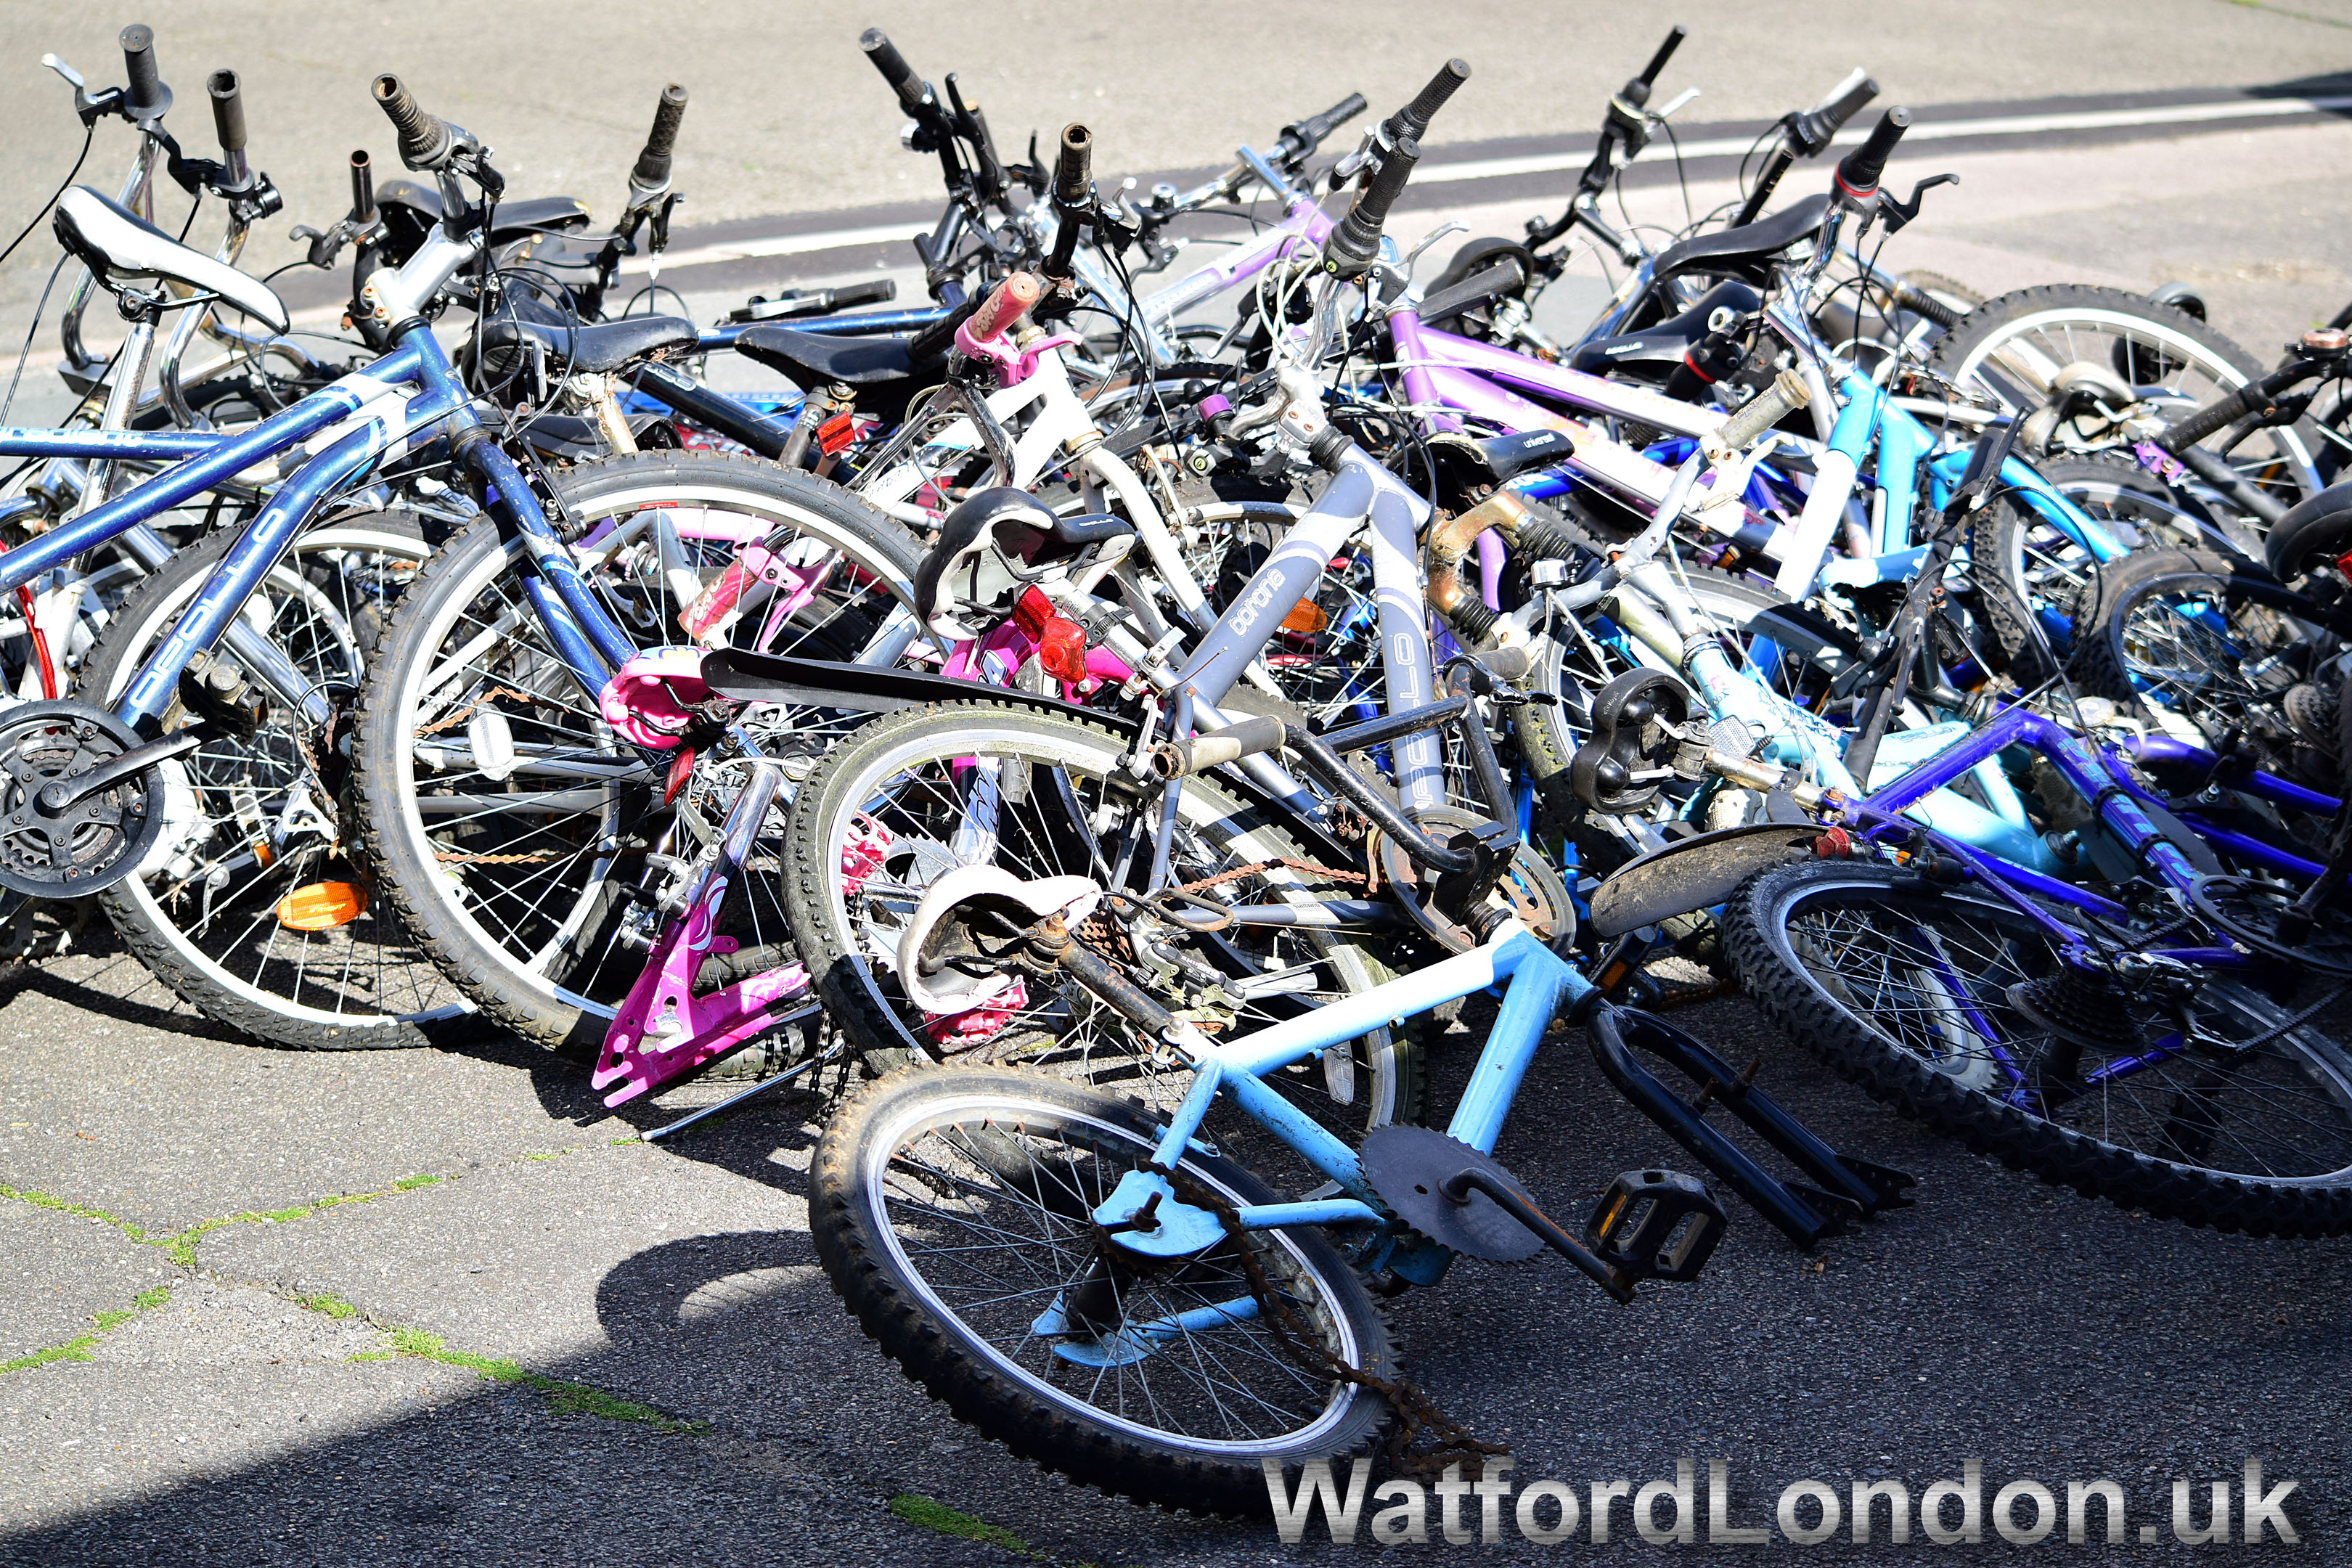 A Haul of Stolen Bycles recovered by Watford Police